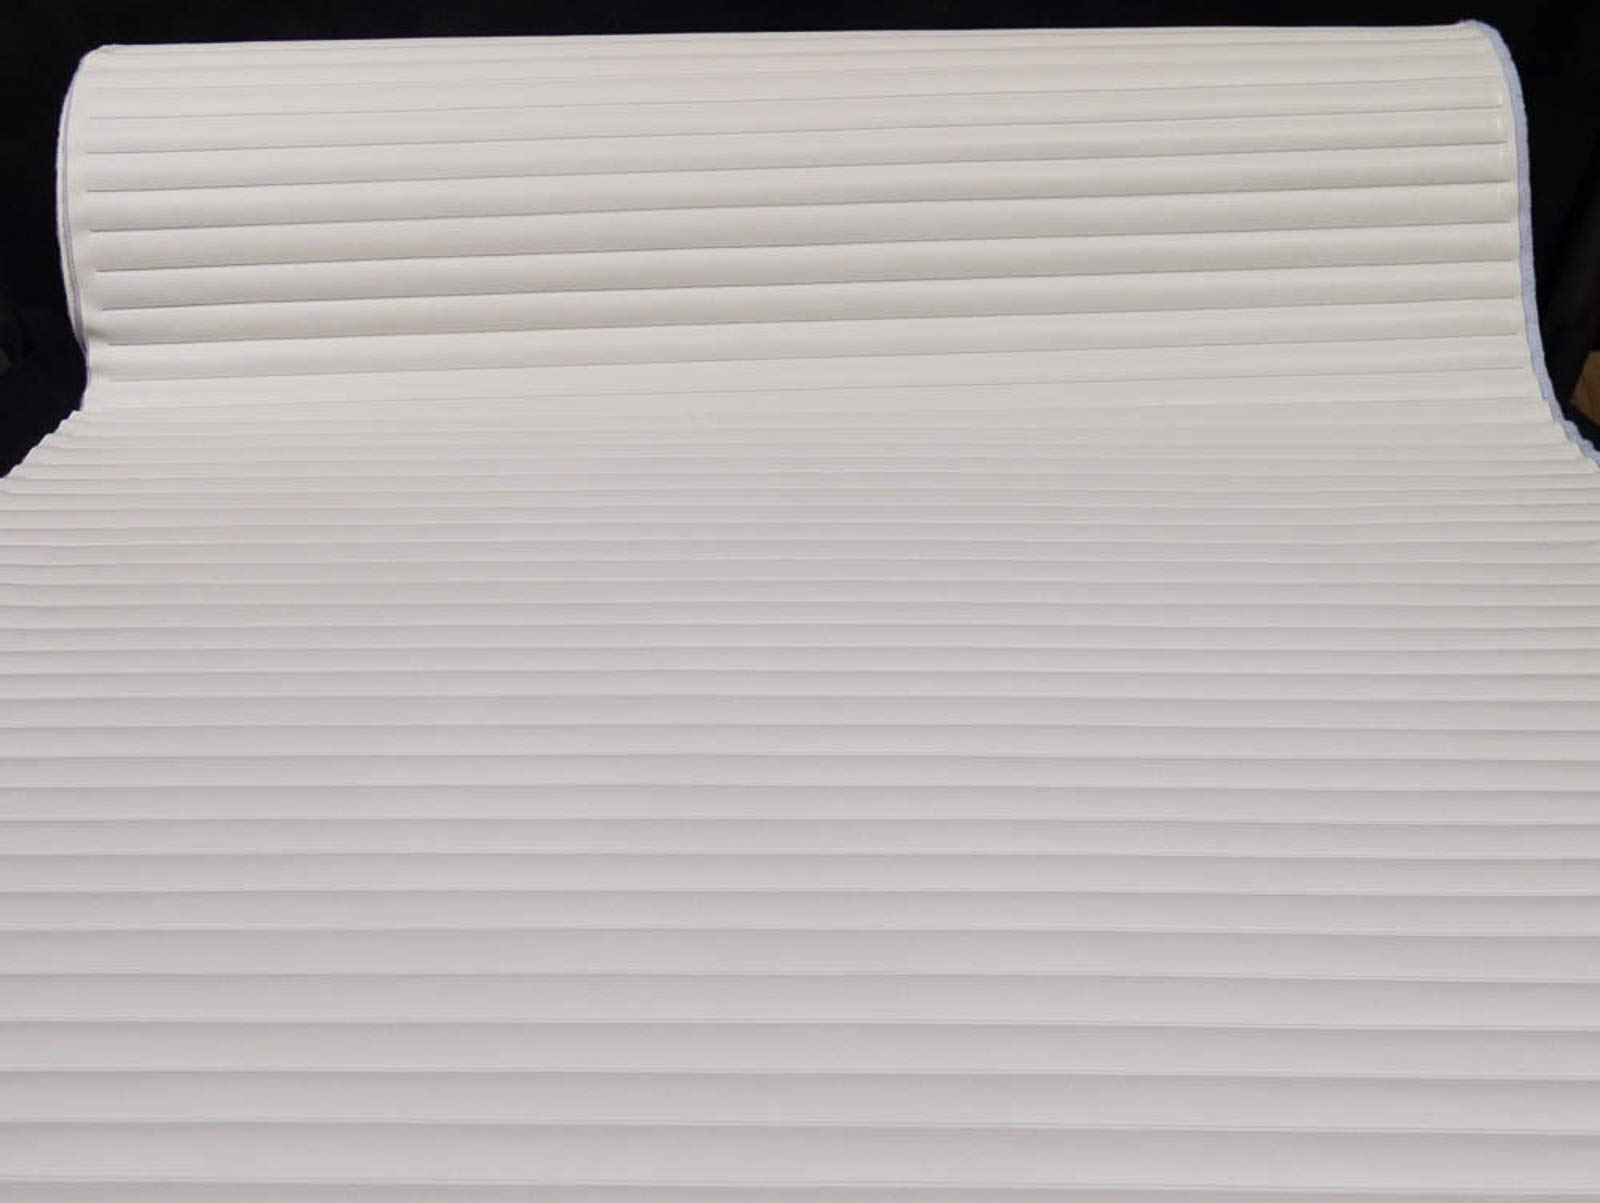 Pleated Marine Vinyl Upholstery Fabric Bright White 54'' Wide by 5 Yards Boat Auto by Bry-Tech Marine1 (Image #2)